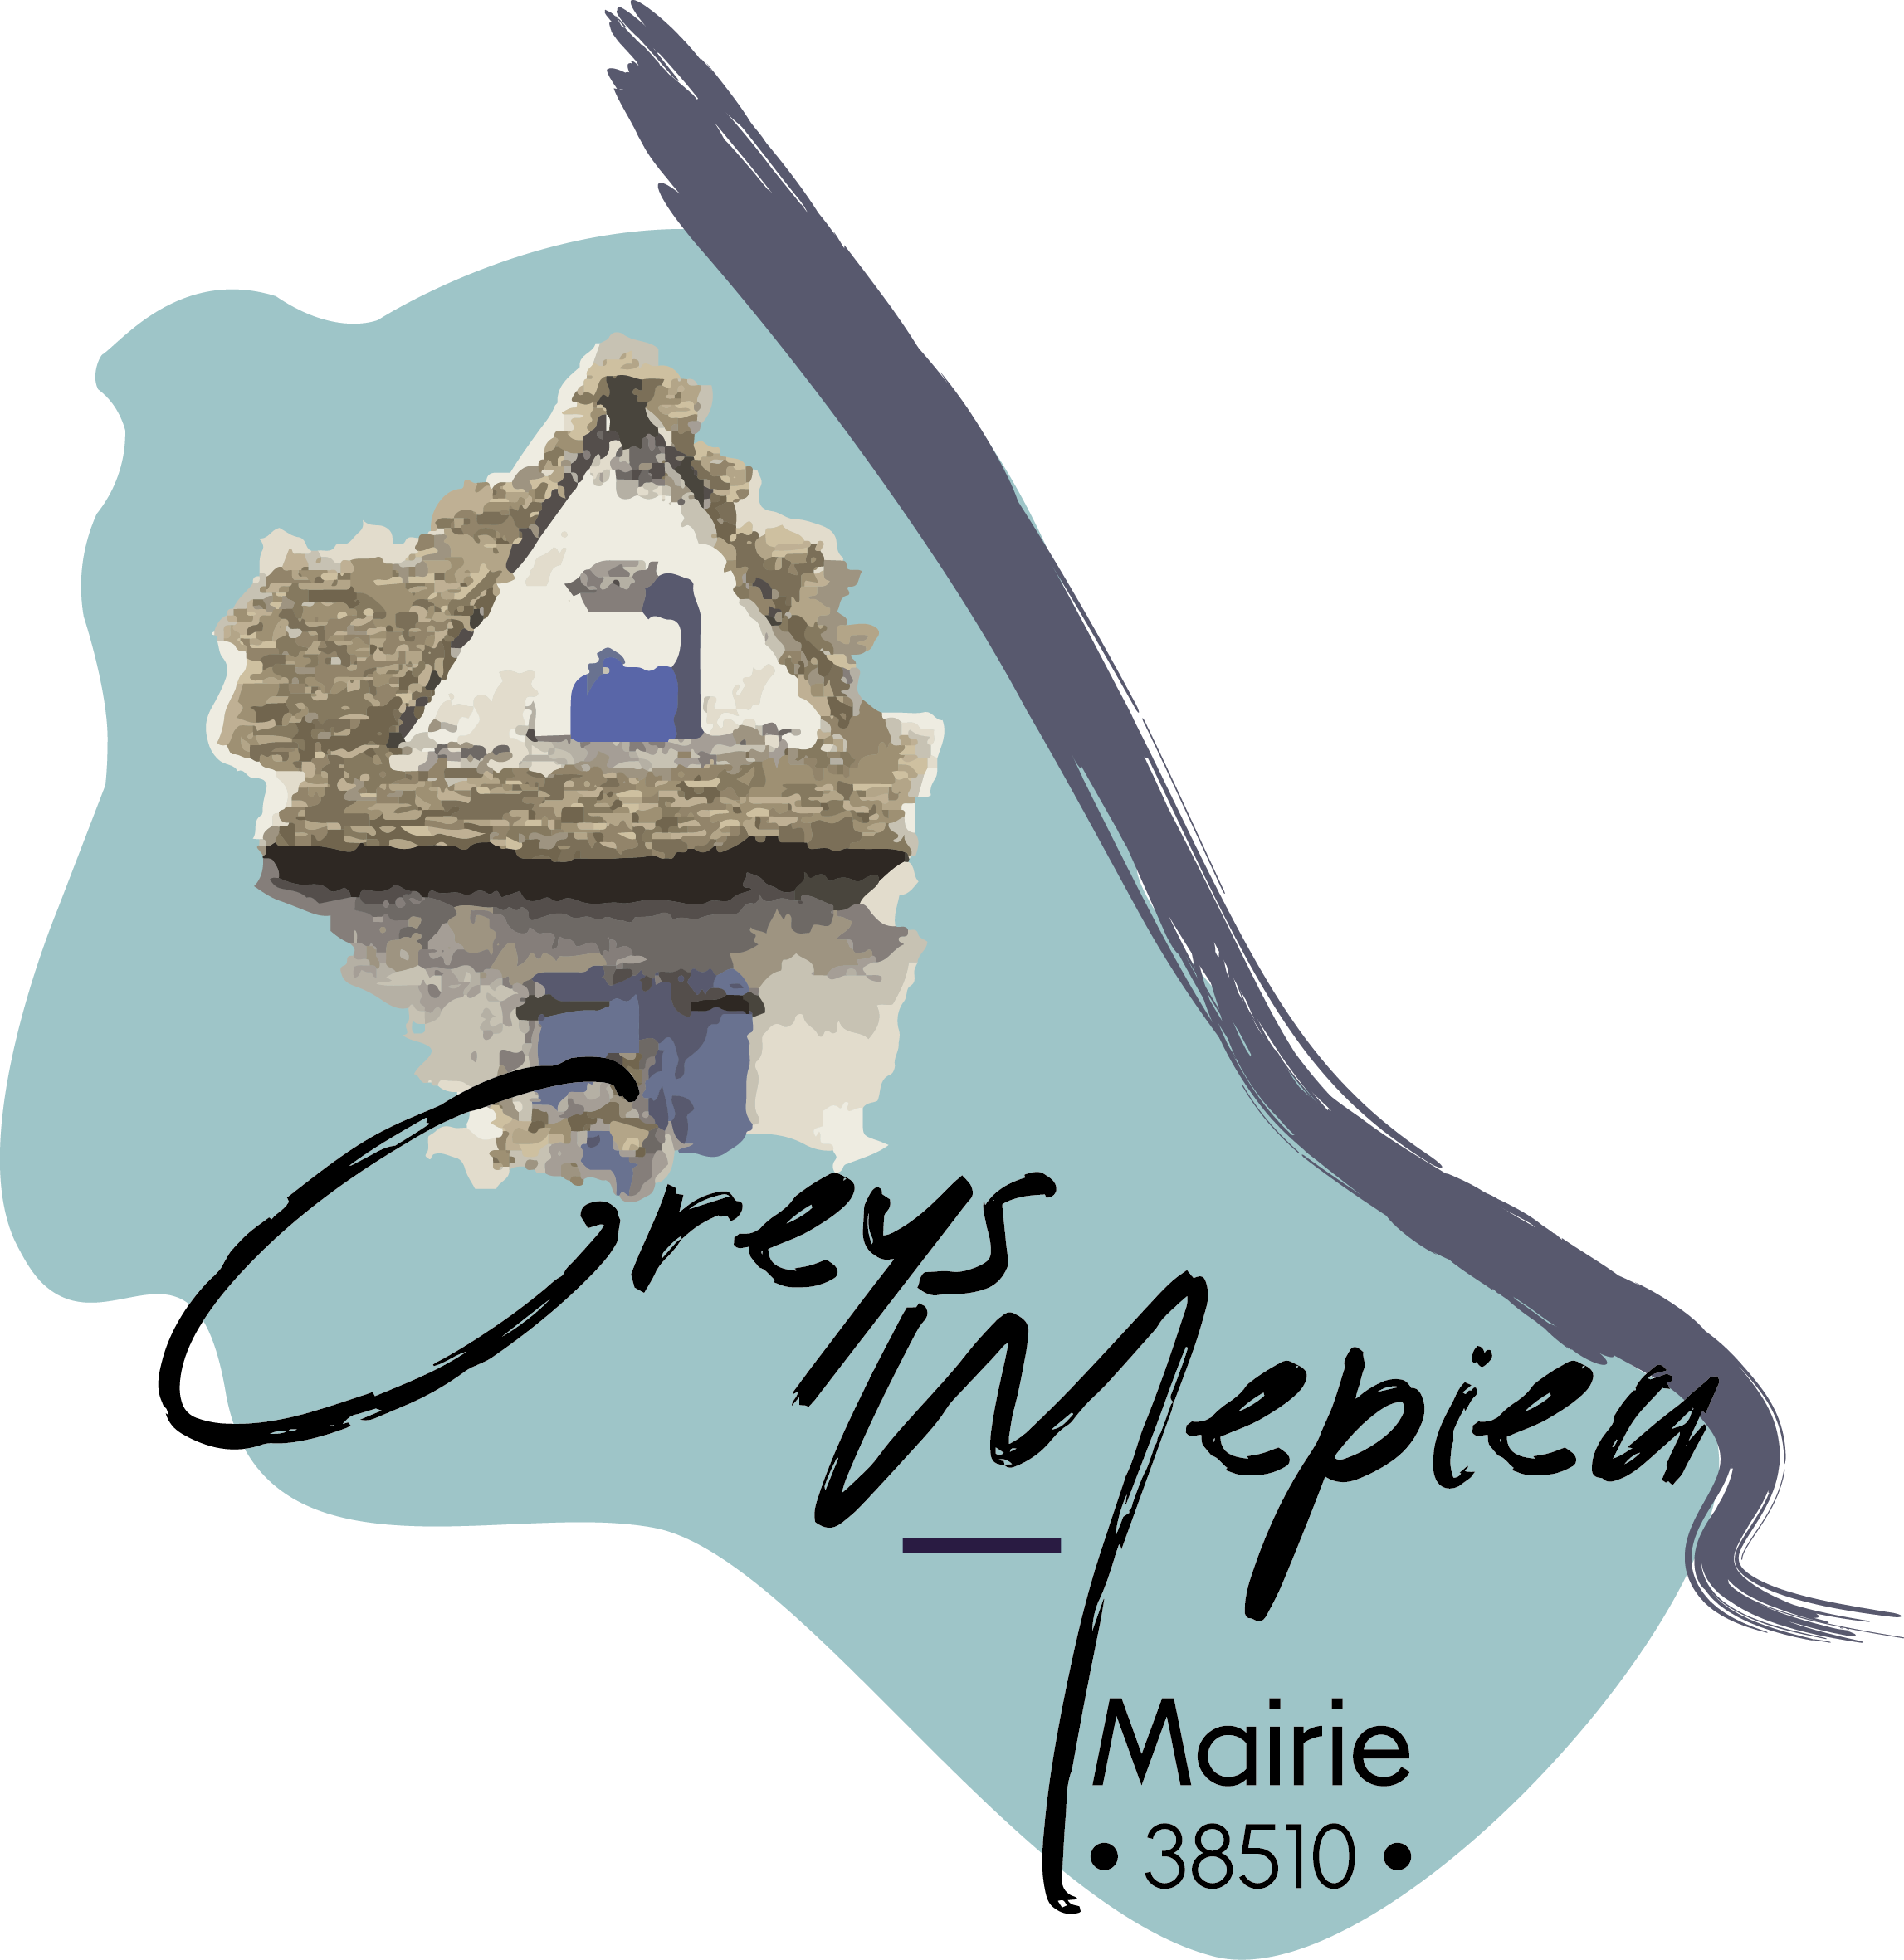 logo-creys-mepieu-quadri - mention-mairie.png